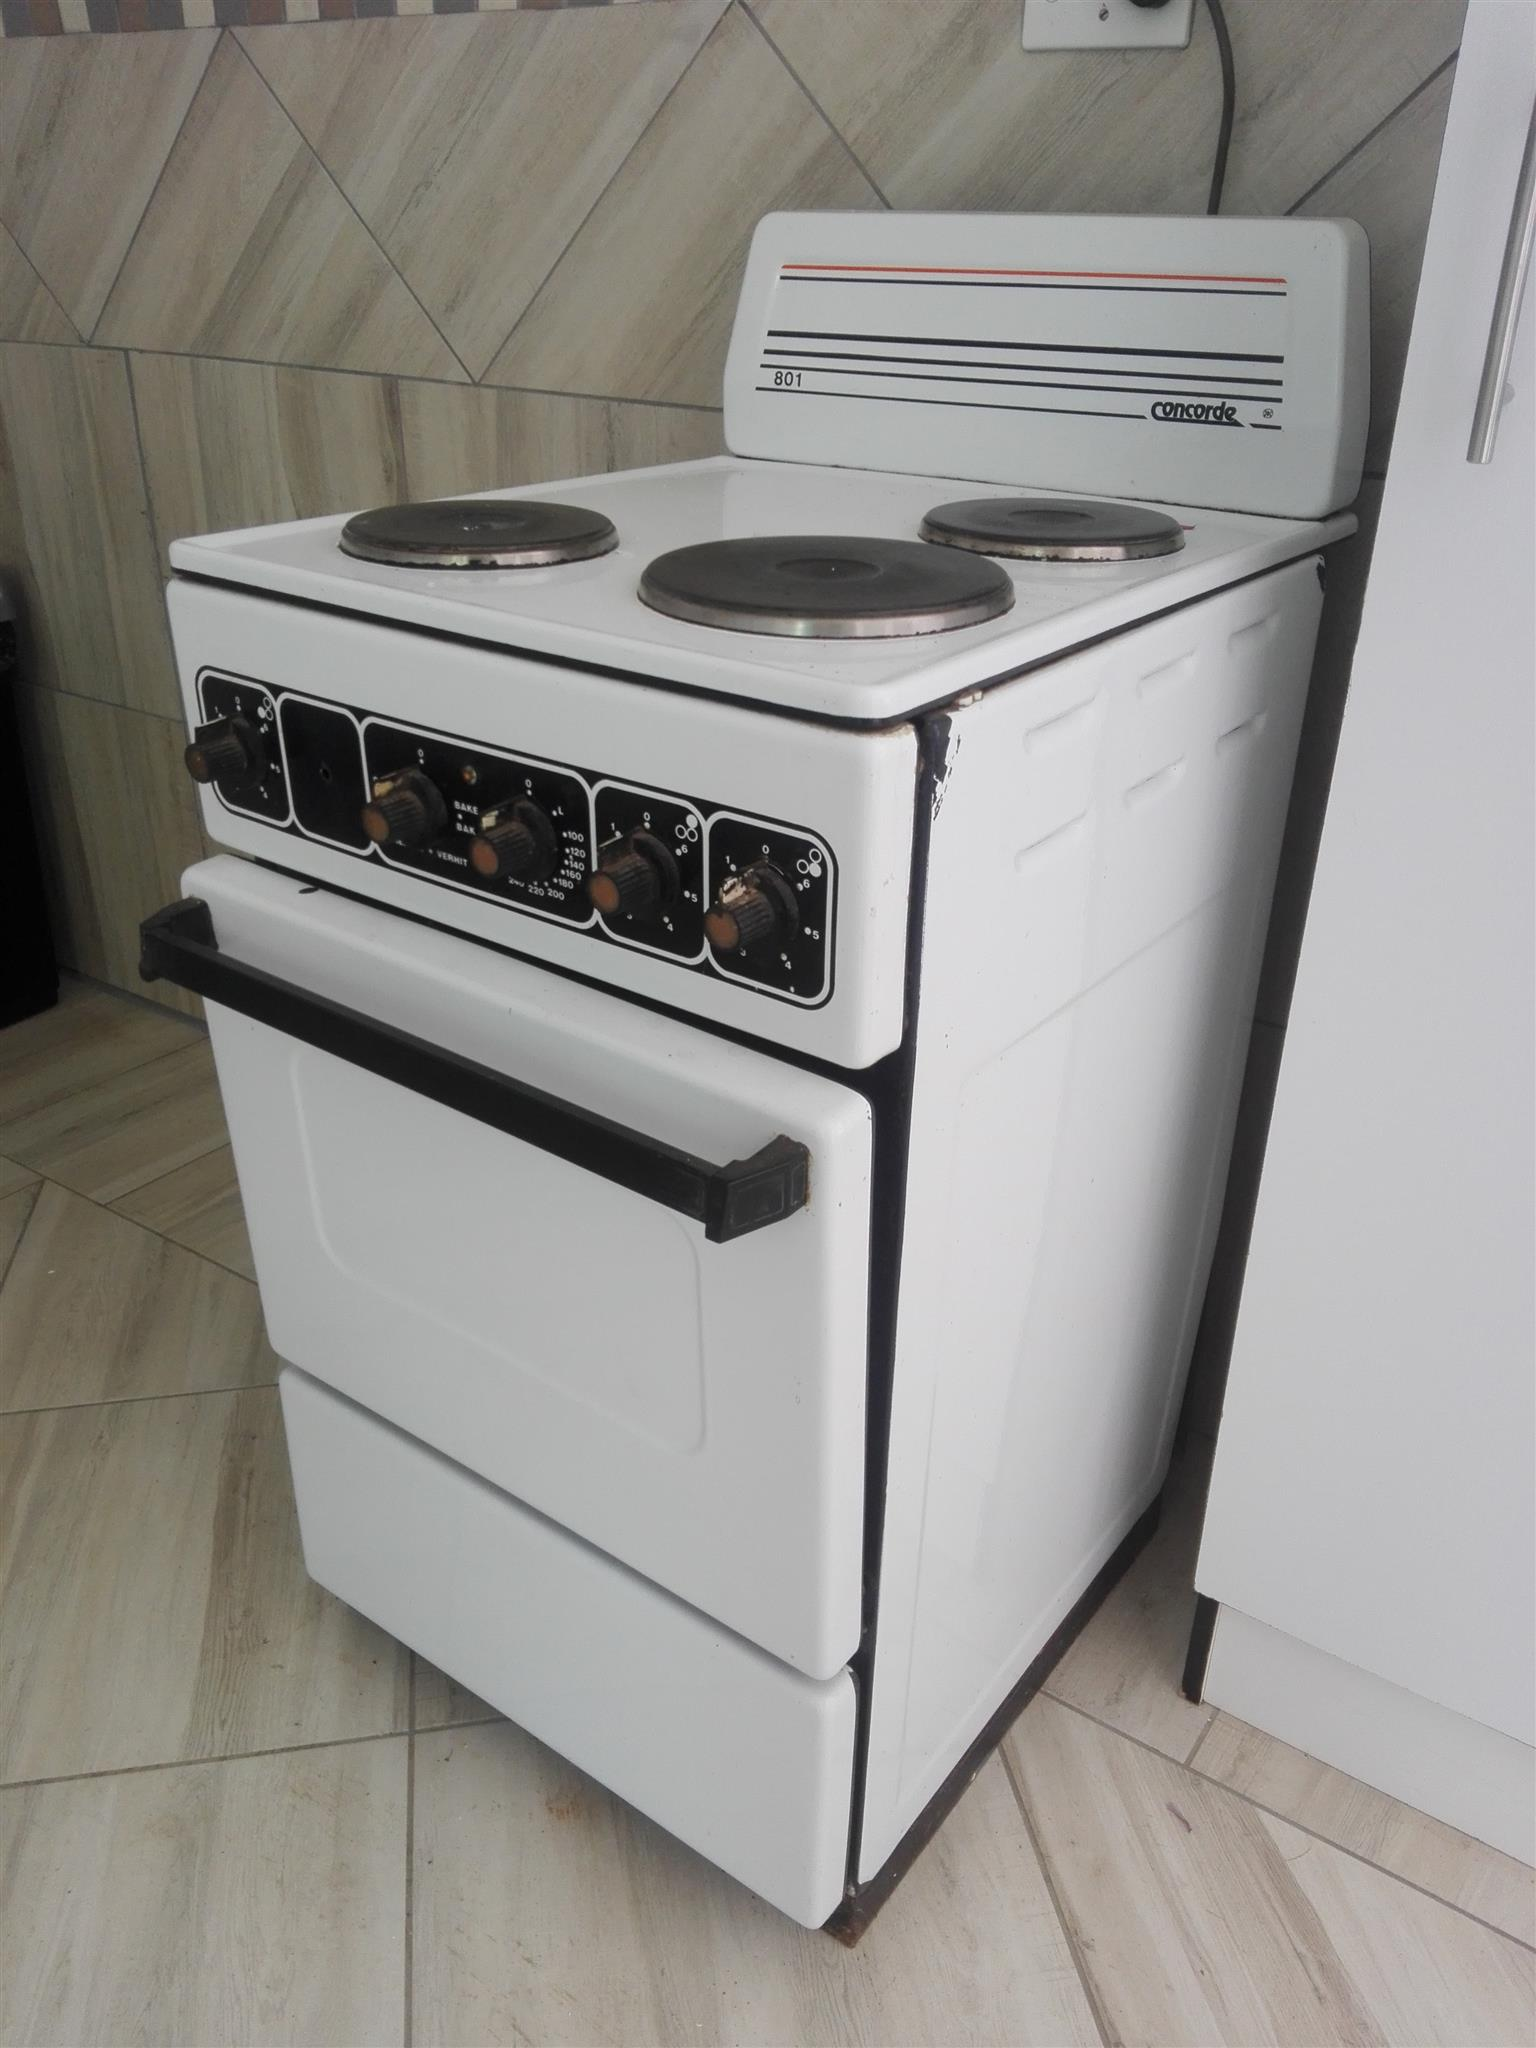 Electric stove and oven